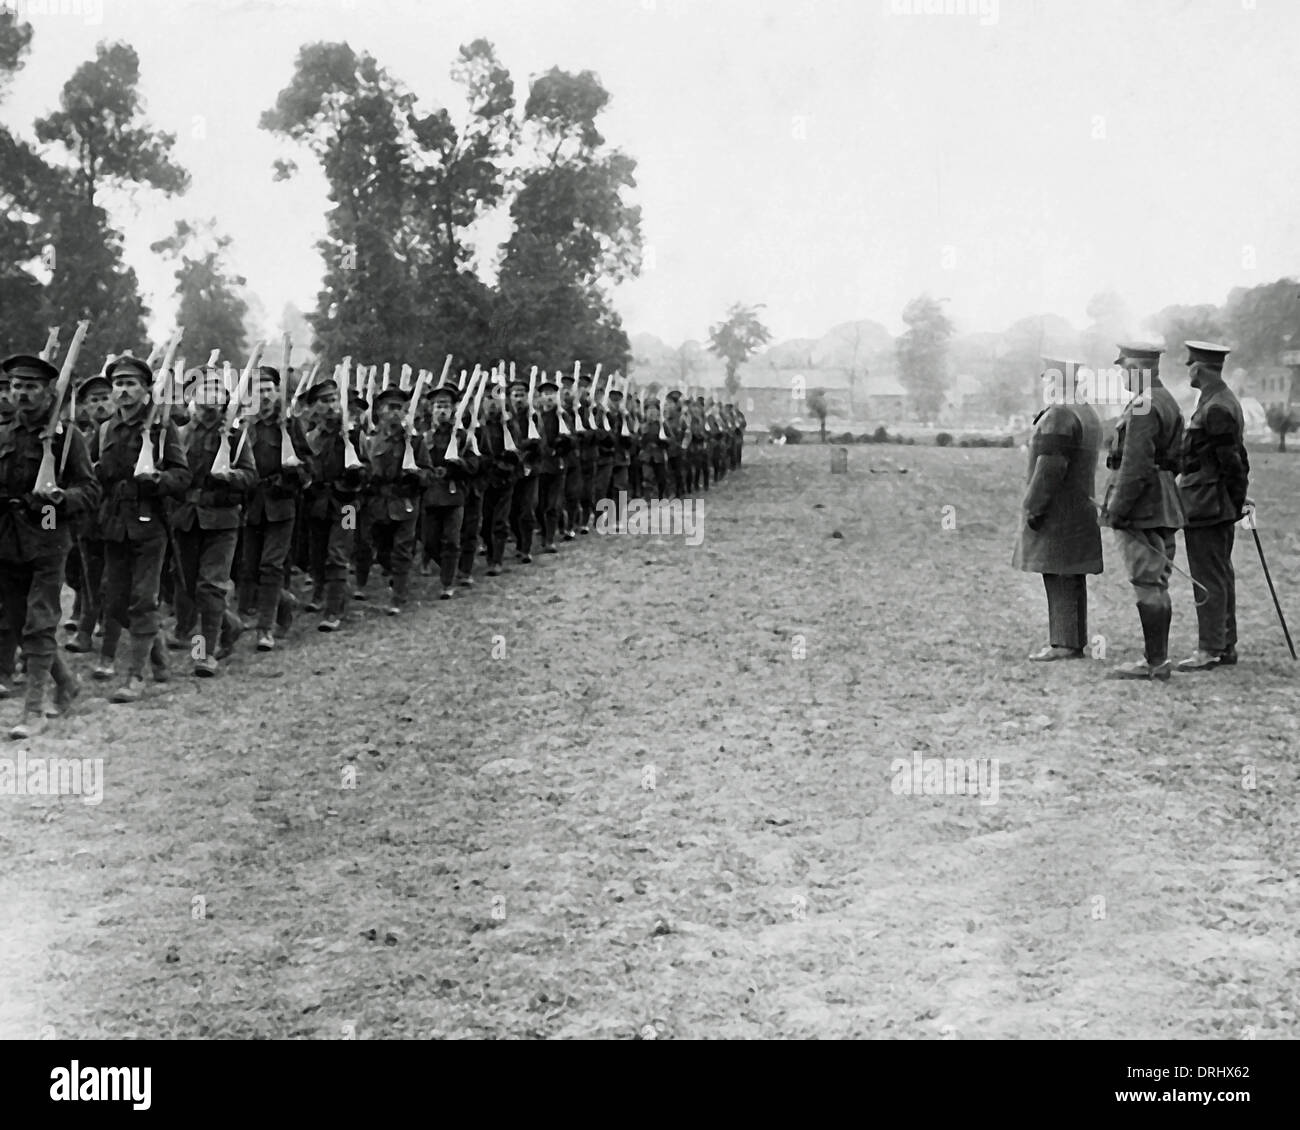 Lord Mayor of London visiting Western Front, WW1 - Stock Image